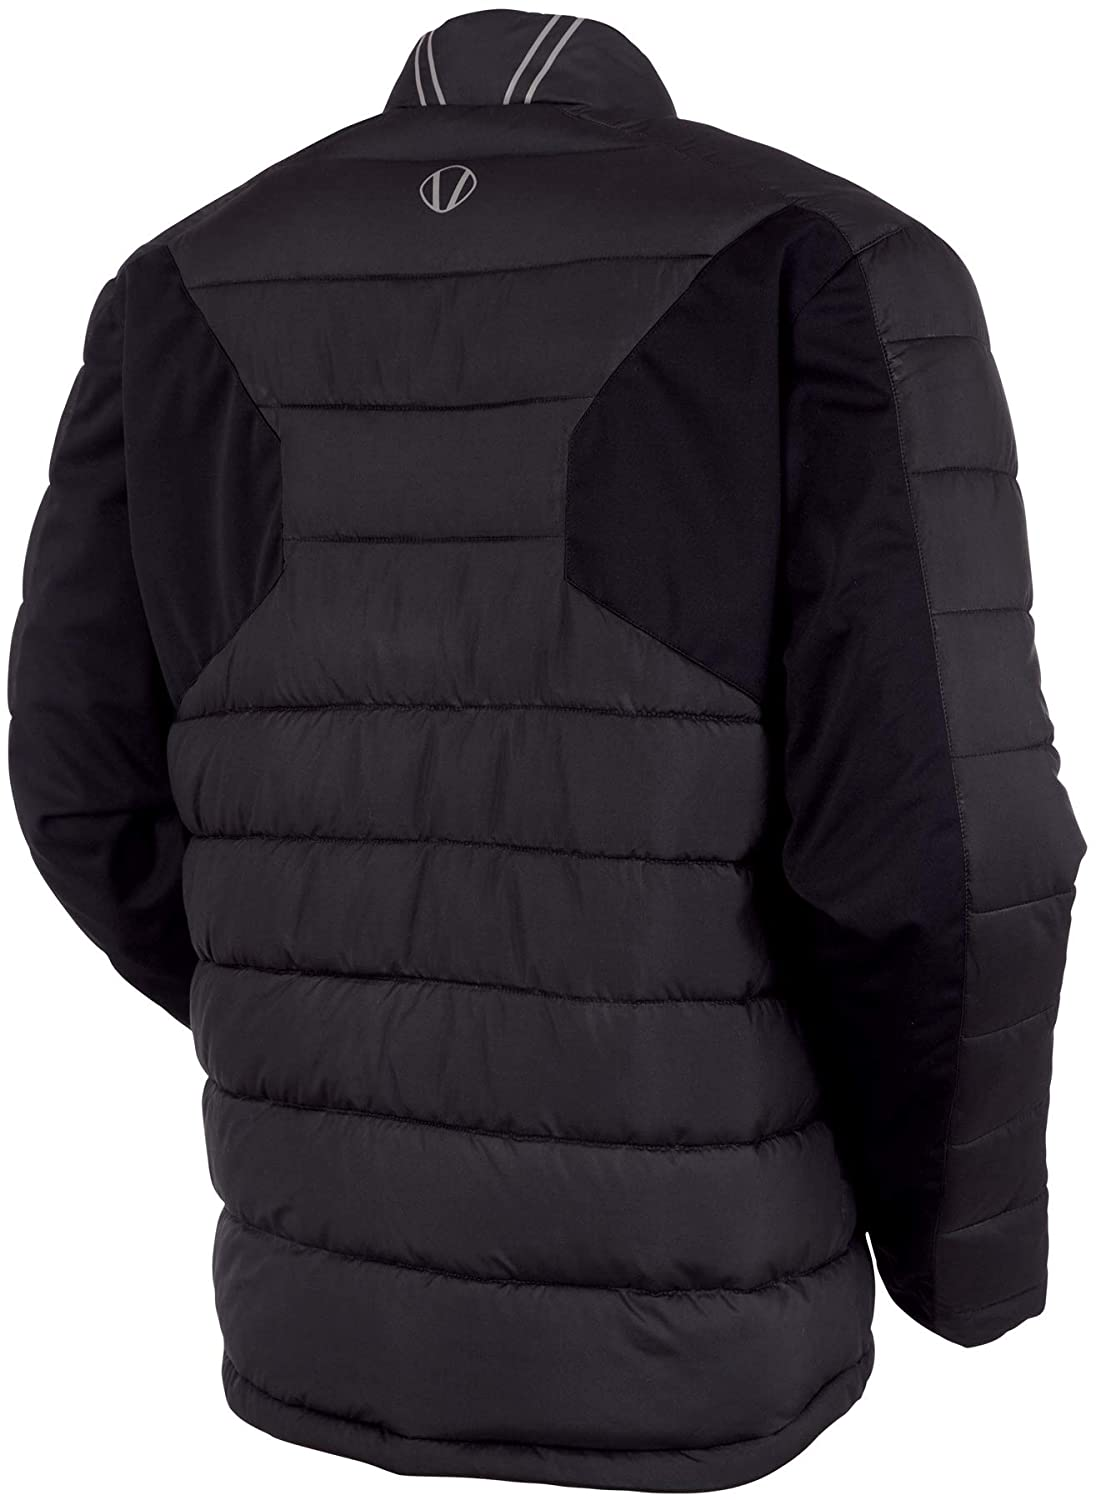 Sunice Forbes Men/'s Waterproof Thermal Full Zip Jacket with 3M Thinsulate